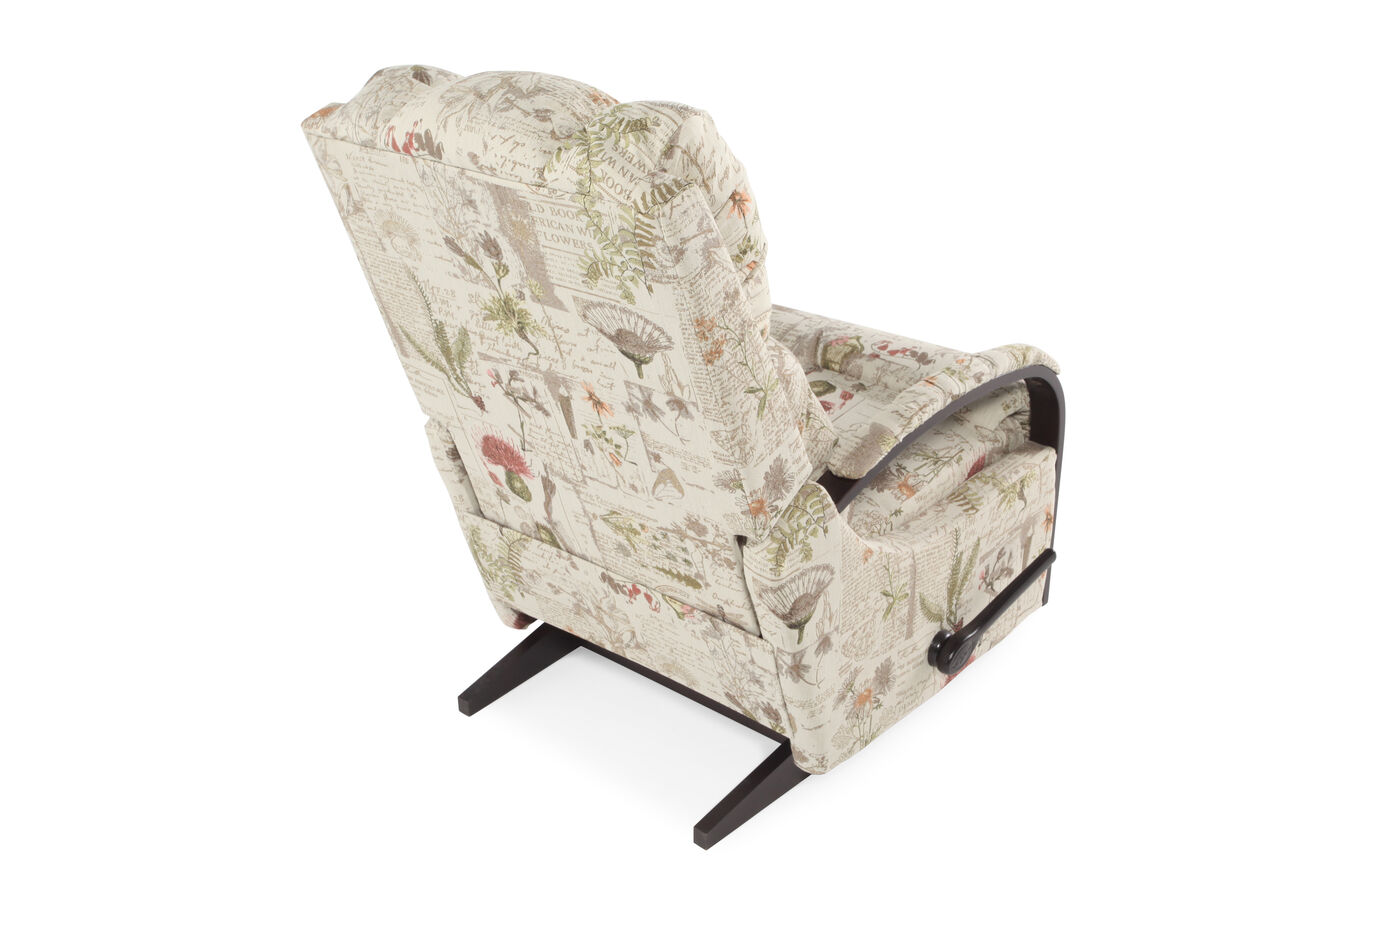 Floral Patterned Rocker Recliner In Cream Mathis